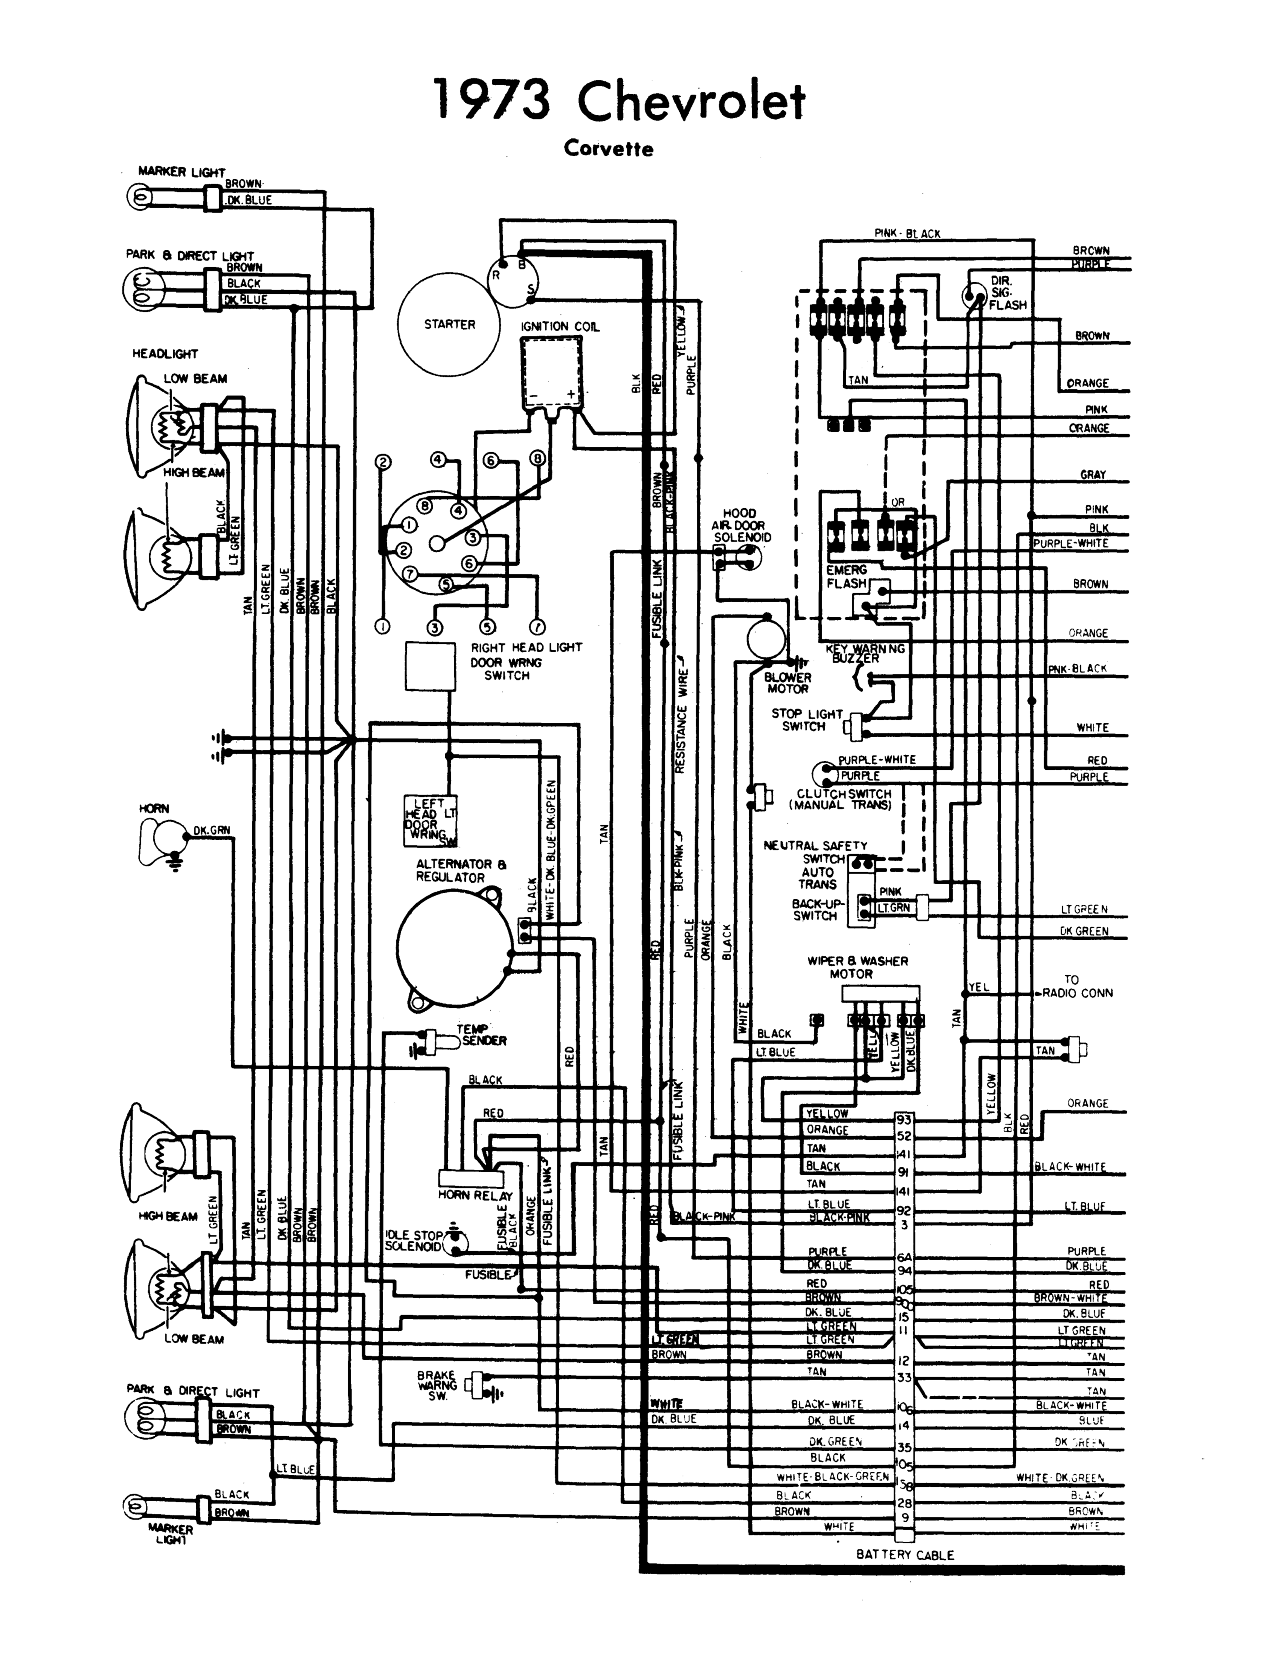 hight resolution of  75 c3 corvette wiring diagram free download 1973 corvette wiring schematic wiring diagram showelectronic ignition wiring diagram 73 corvette wiring